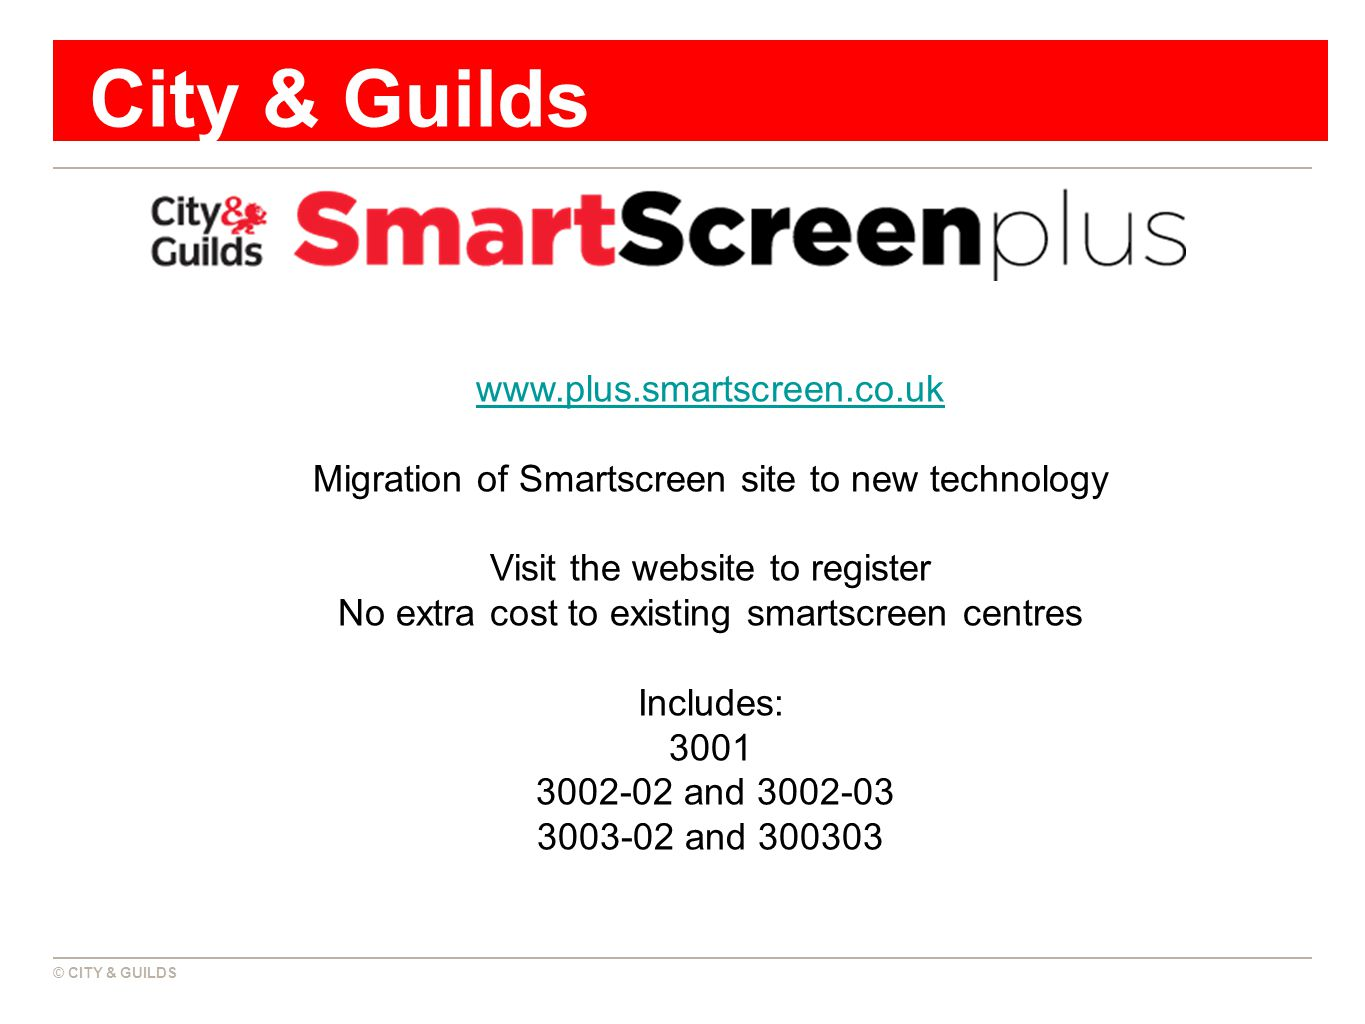 © CITY & GUILDS City & Guilds www.plus.smartscreen.co.uk Migration of Smartscreen site to new technology Visit the website to register No extra cost to existing smartscreen centres Includes: 3001 3002-02 and 3002-03 3003-02 and 300303